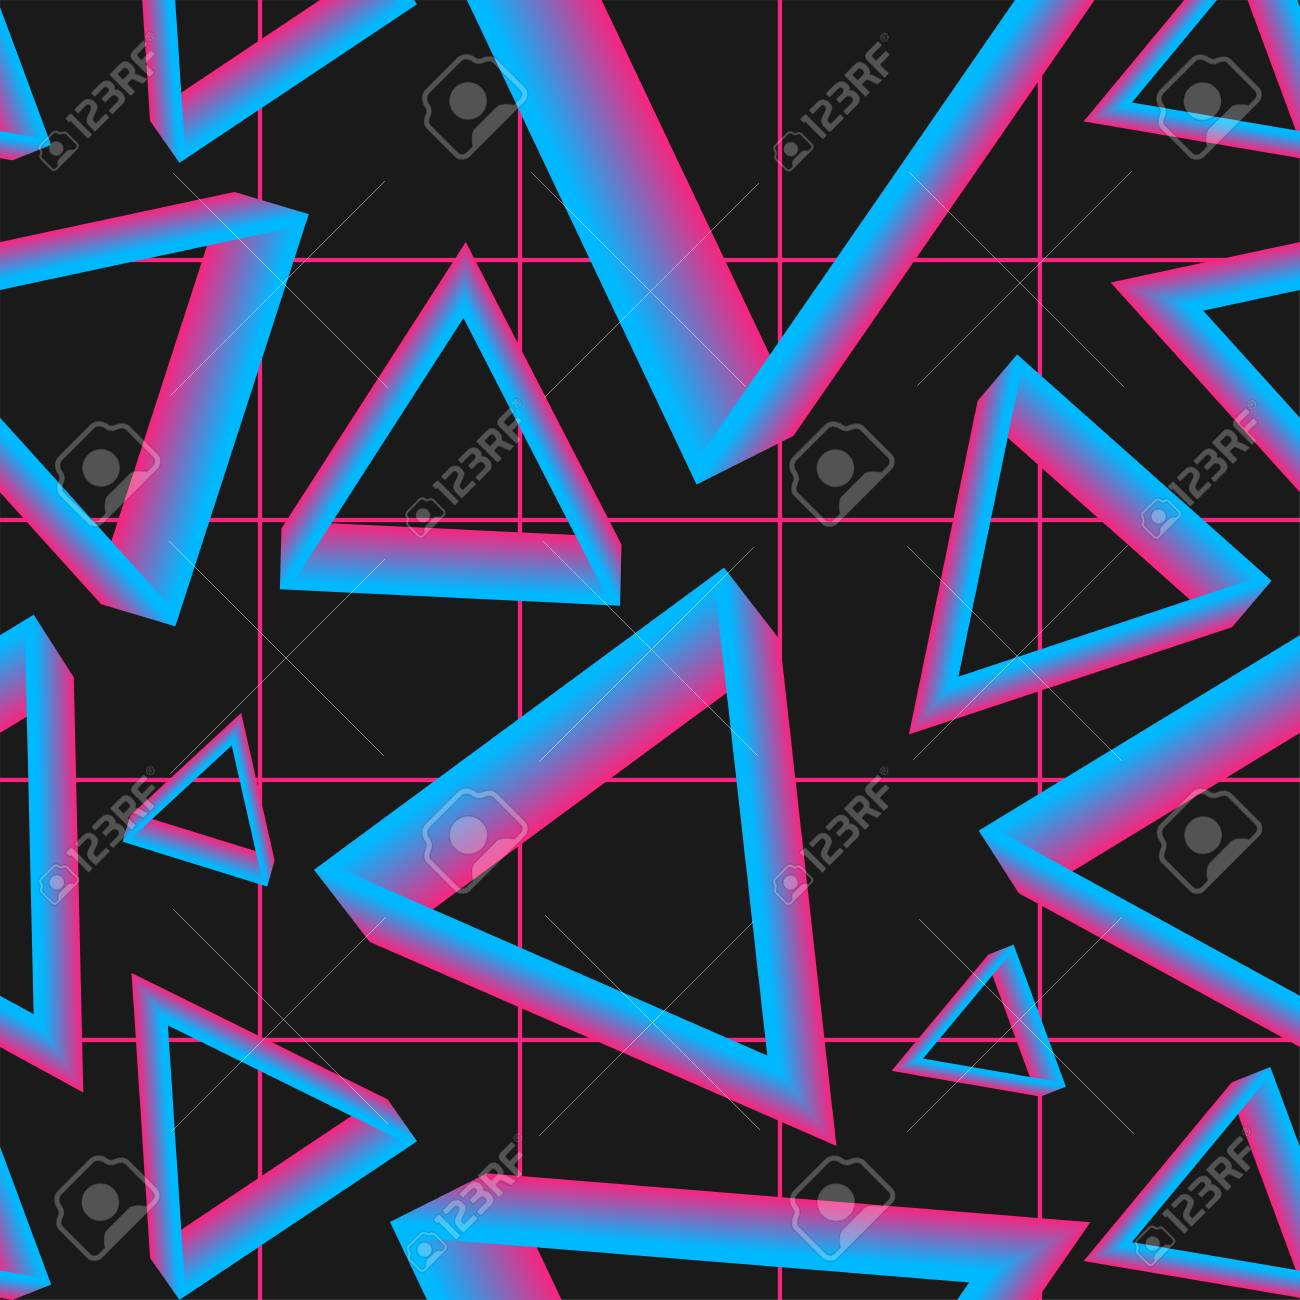 Vaporwave Seamless 80s Style Pattern With Geometric Shapes